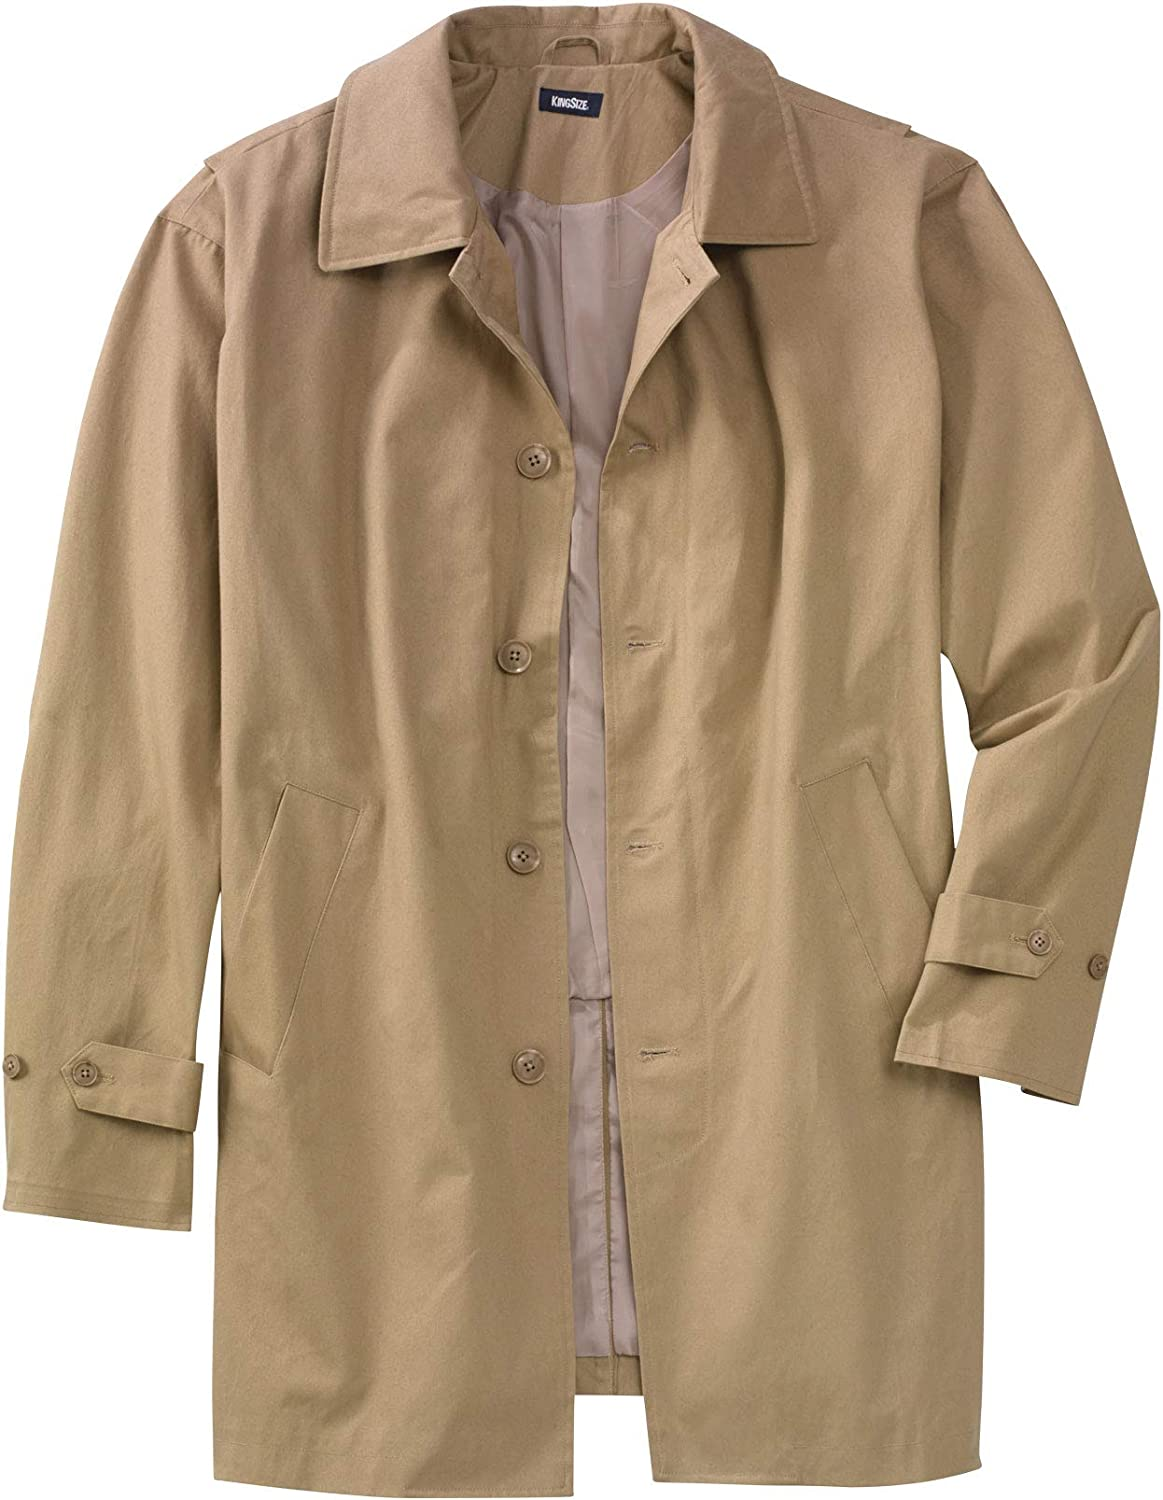 KingSize Mens Big /& Tall Tall Water-Resistant Trench Coat